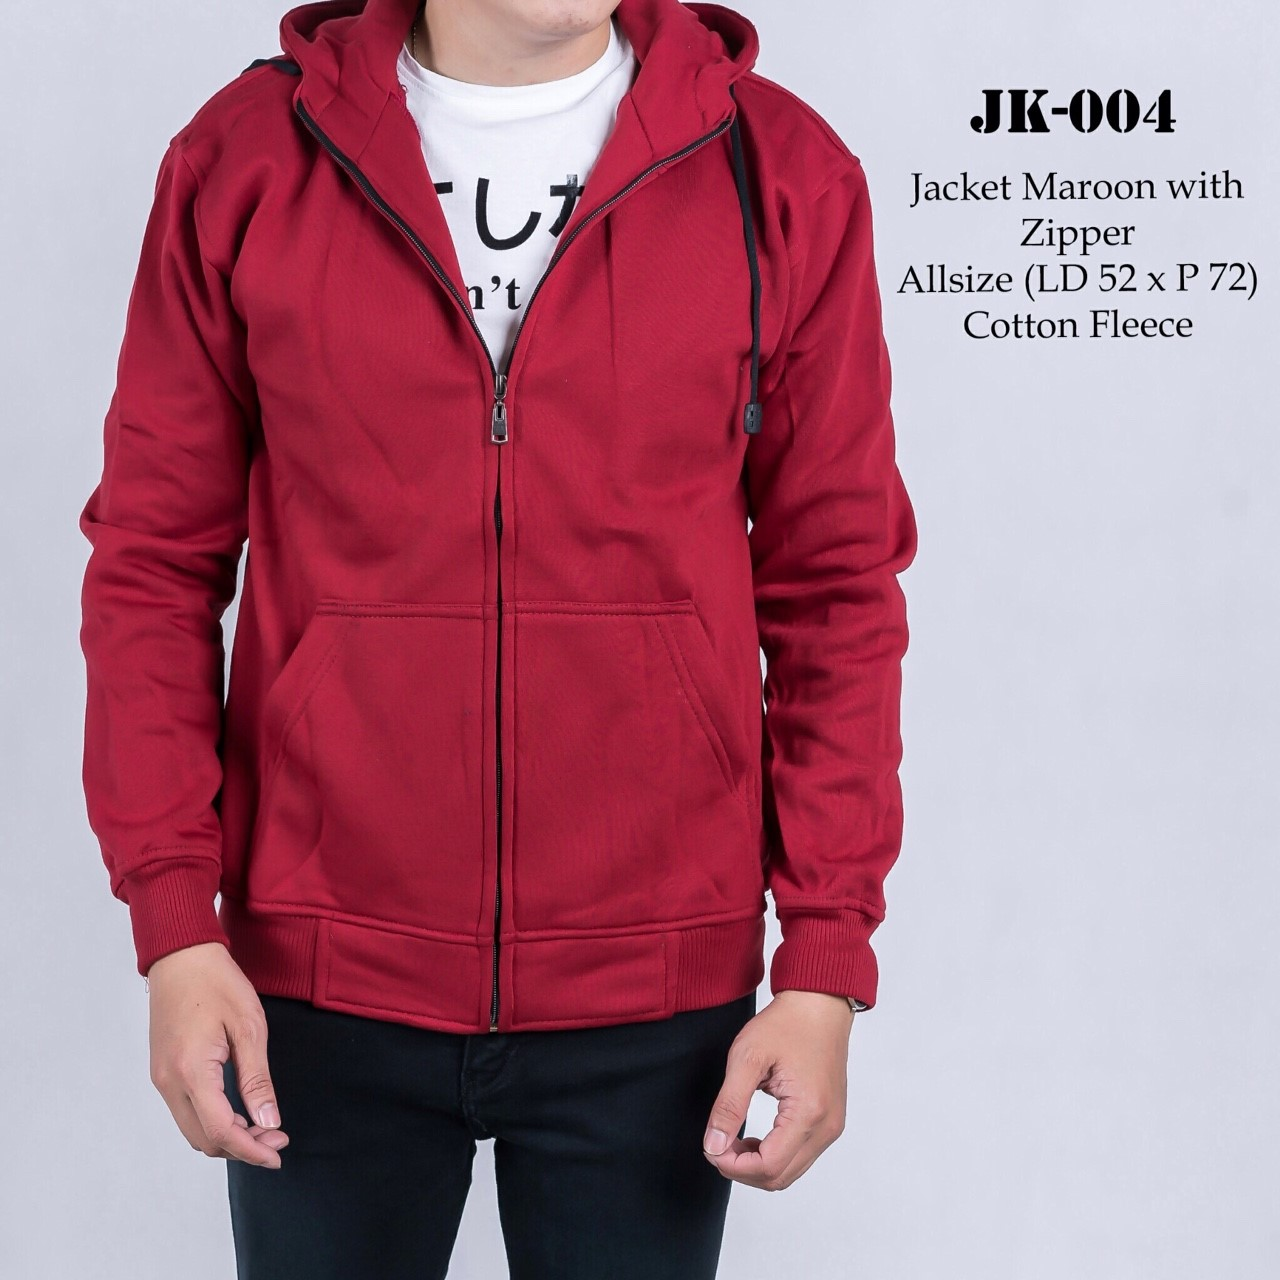 Exitoperfect Shop Line Red Blouse Sj0015 Jk004 Jacket Maroon With Ziiper